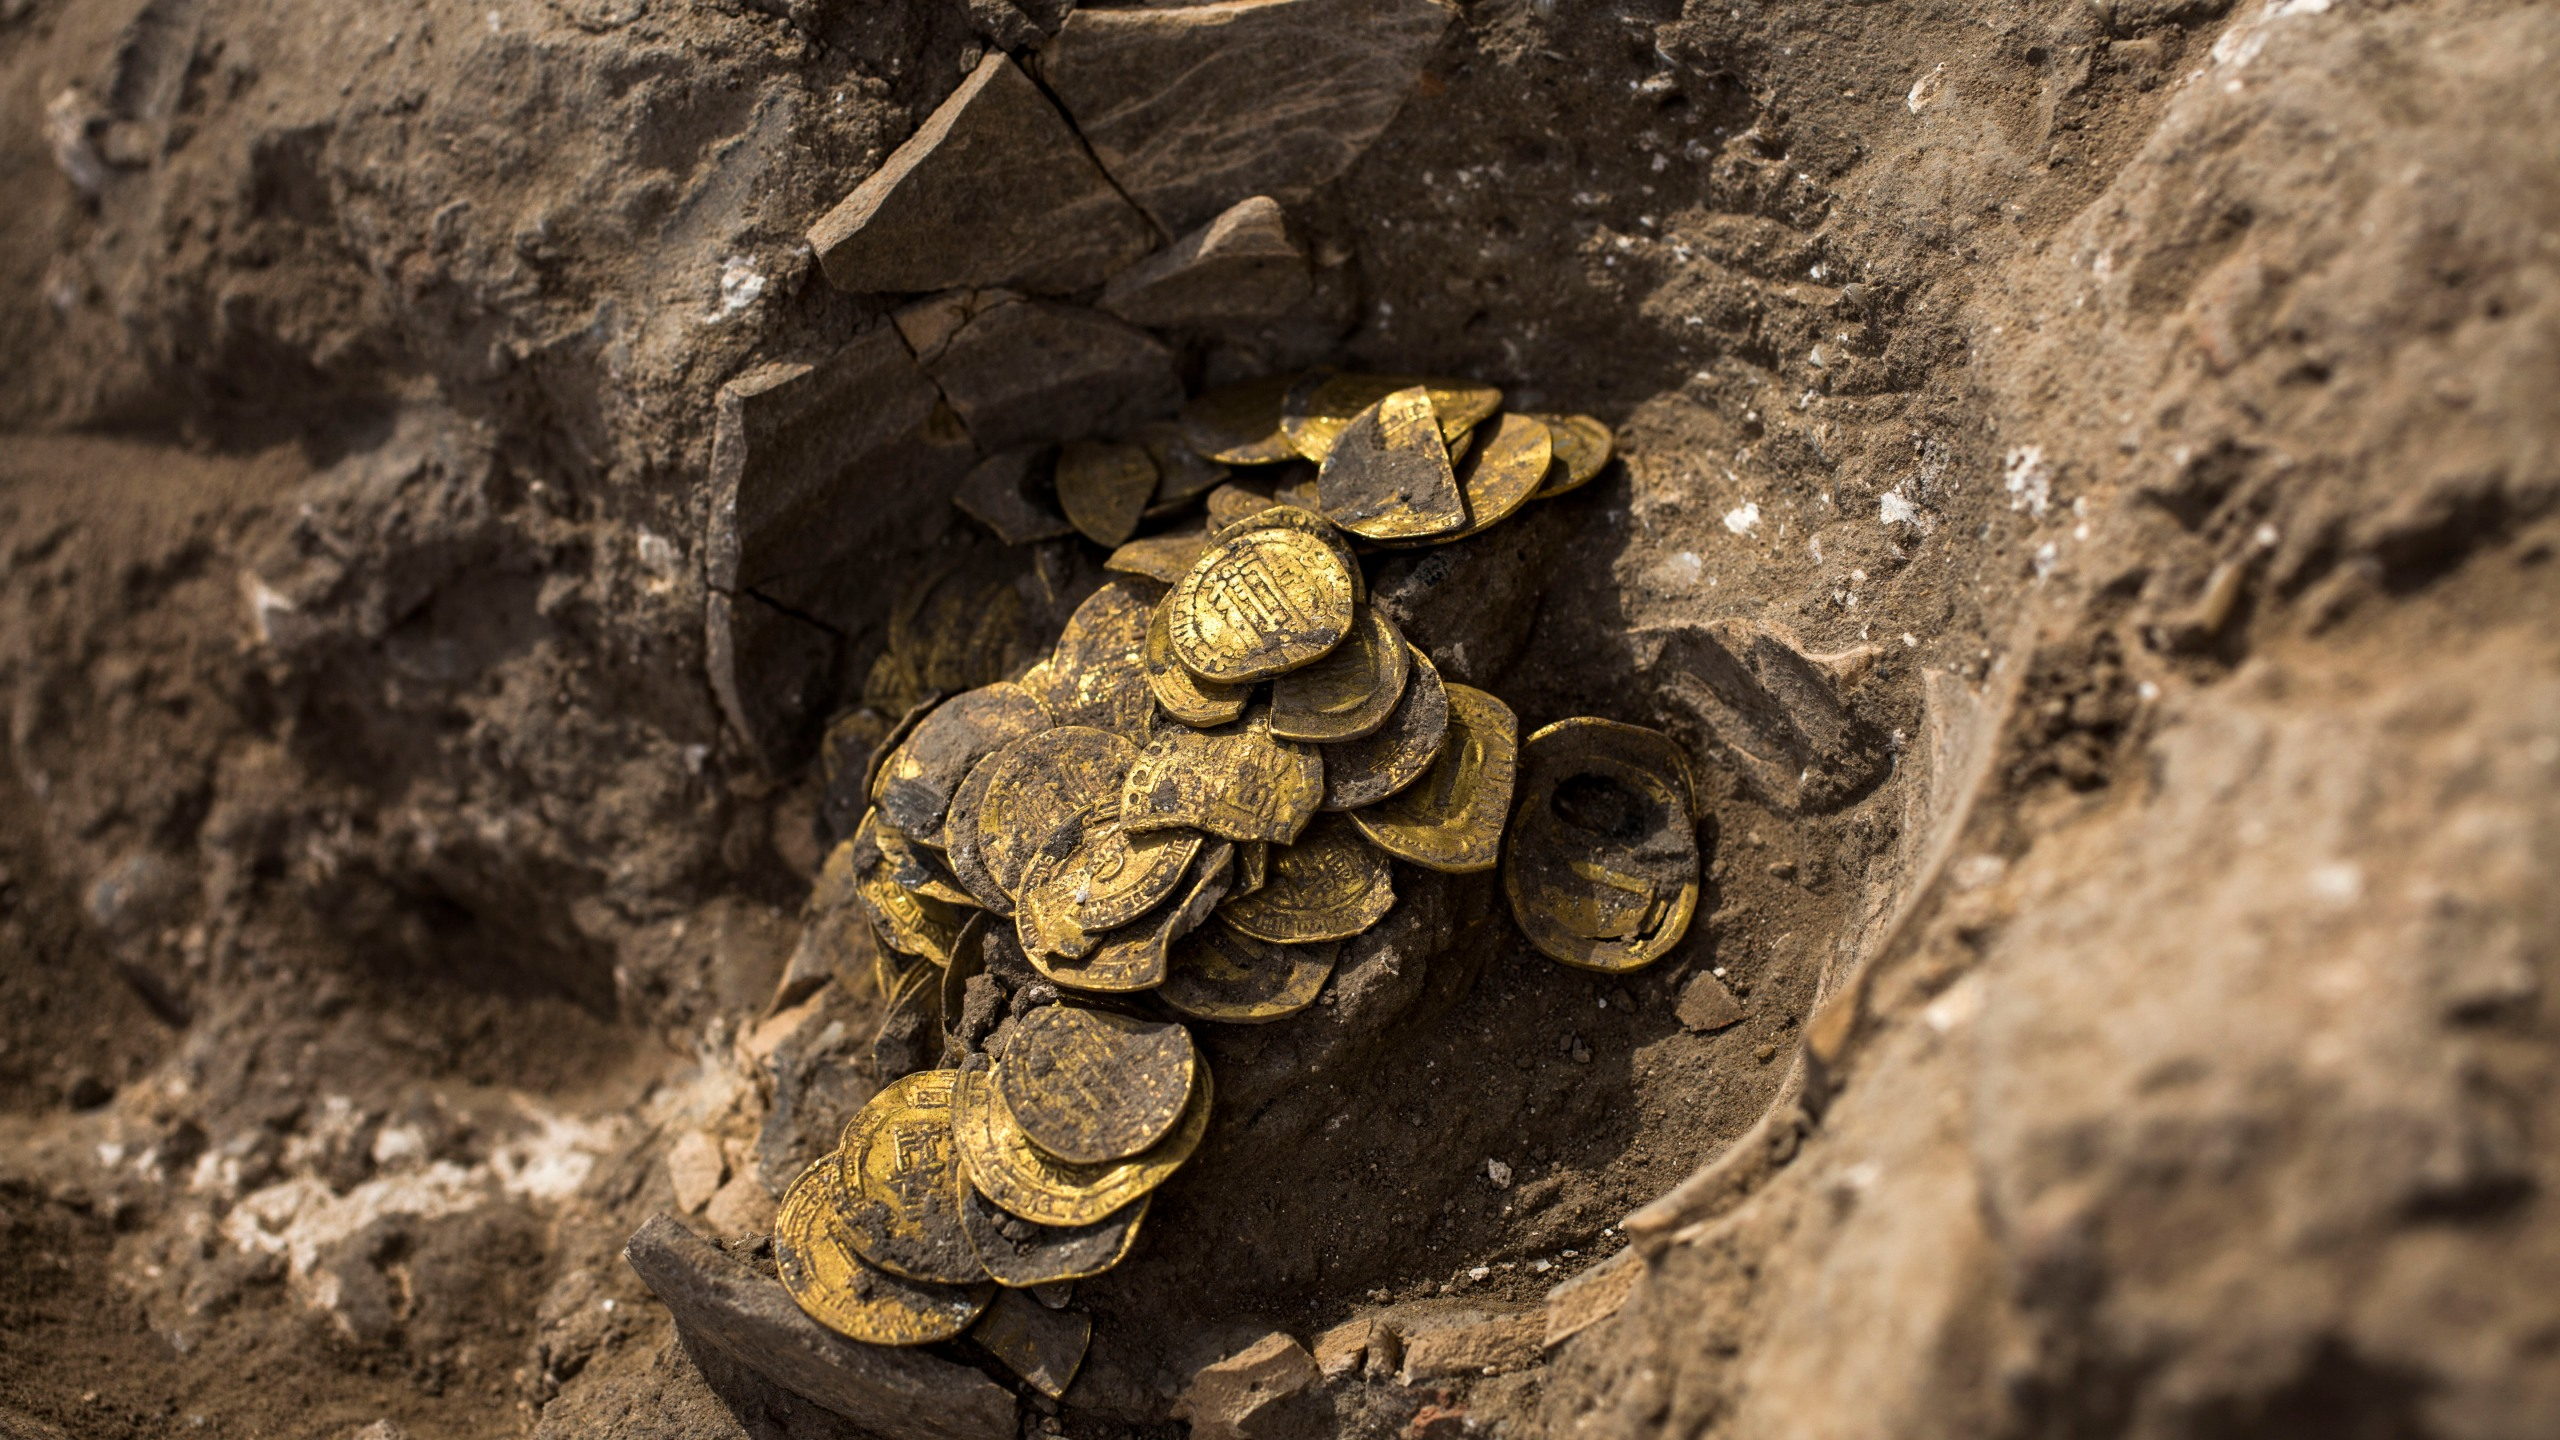 Trove Halloween 2020 Israeli dig unearths large trove of early Islamic gold coins | ABC27